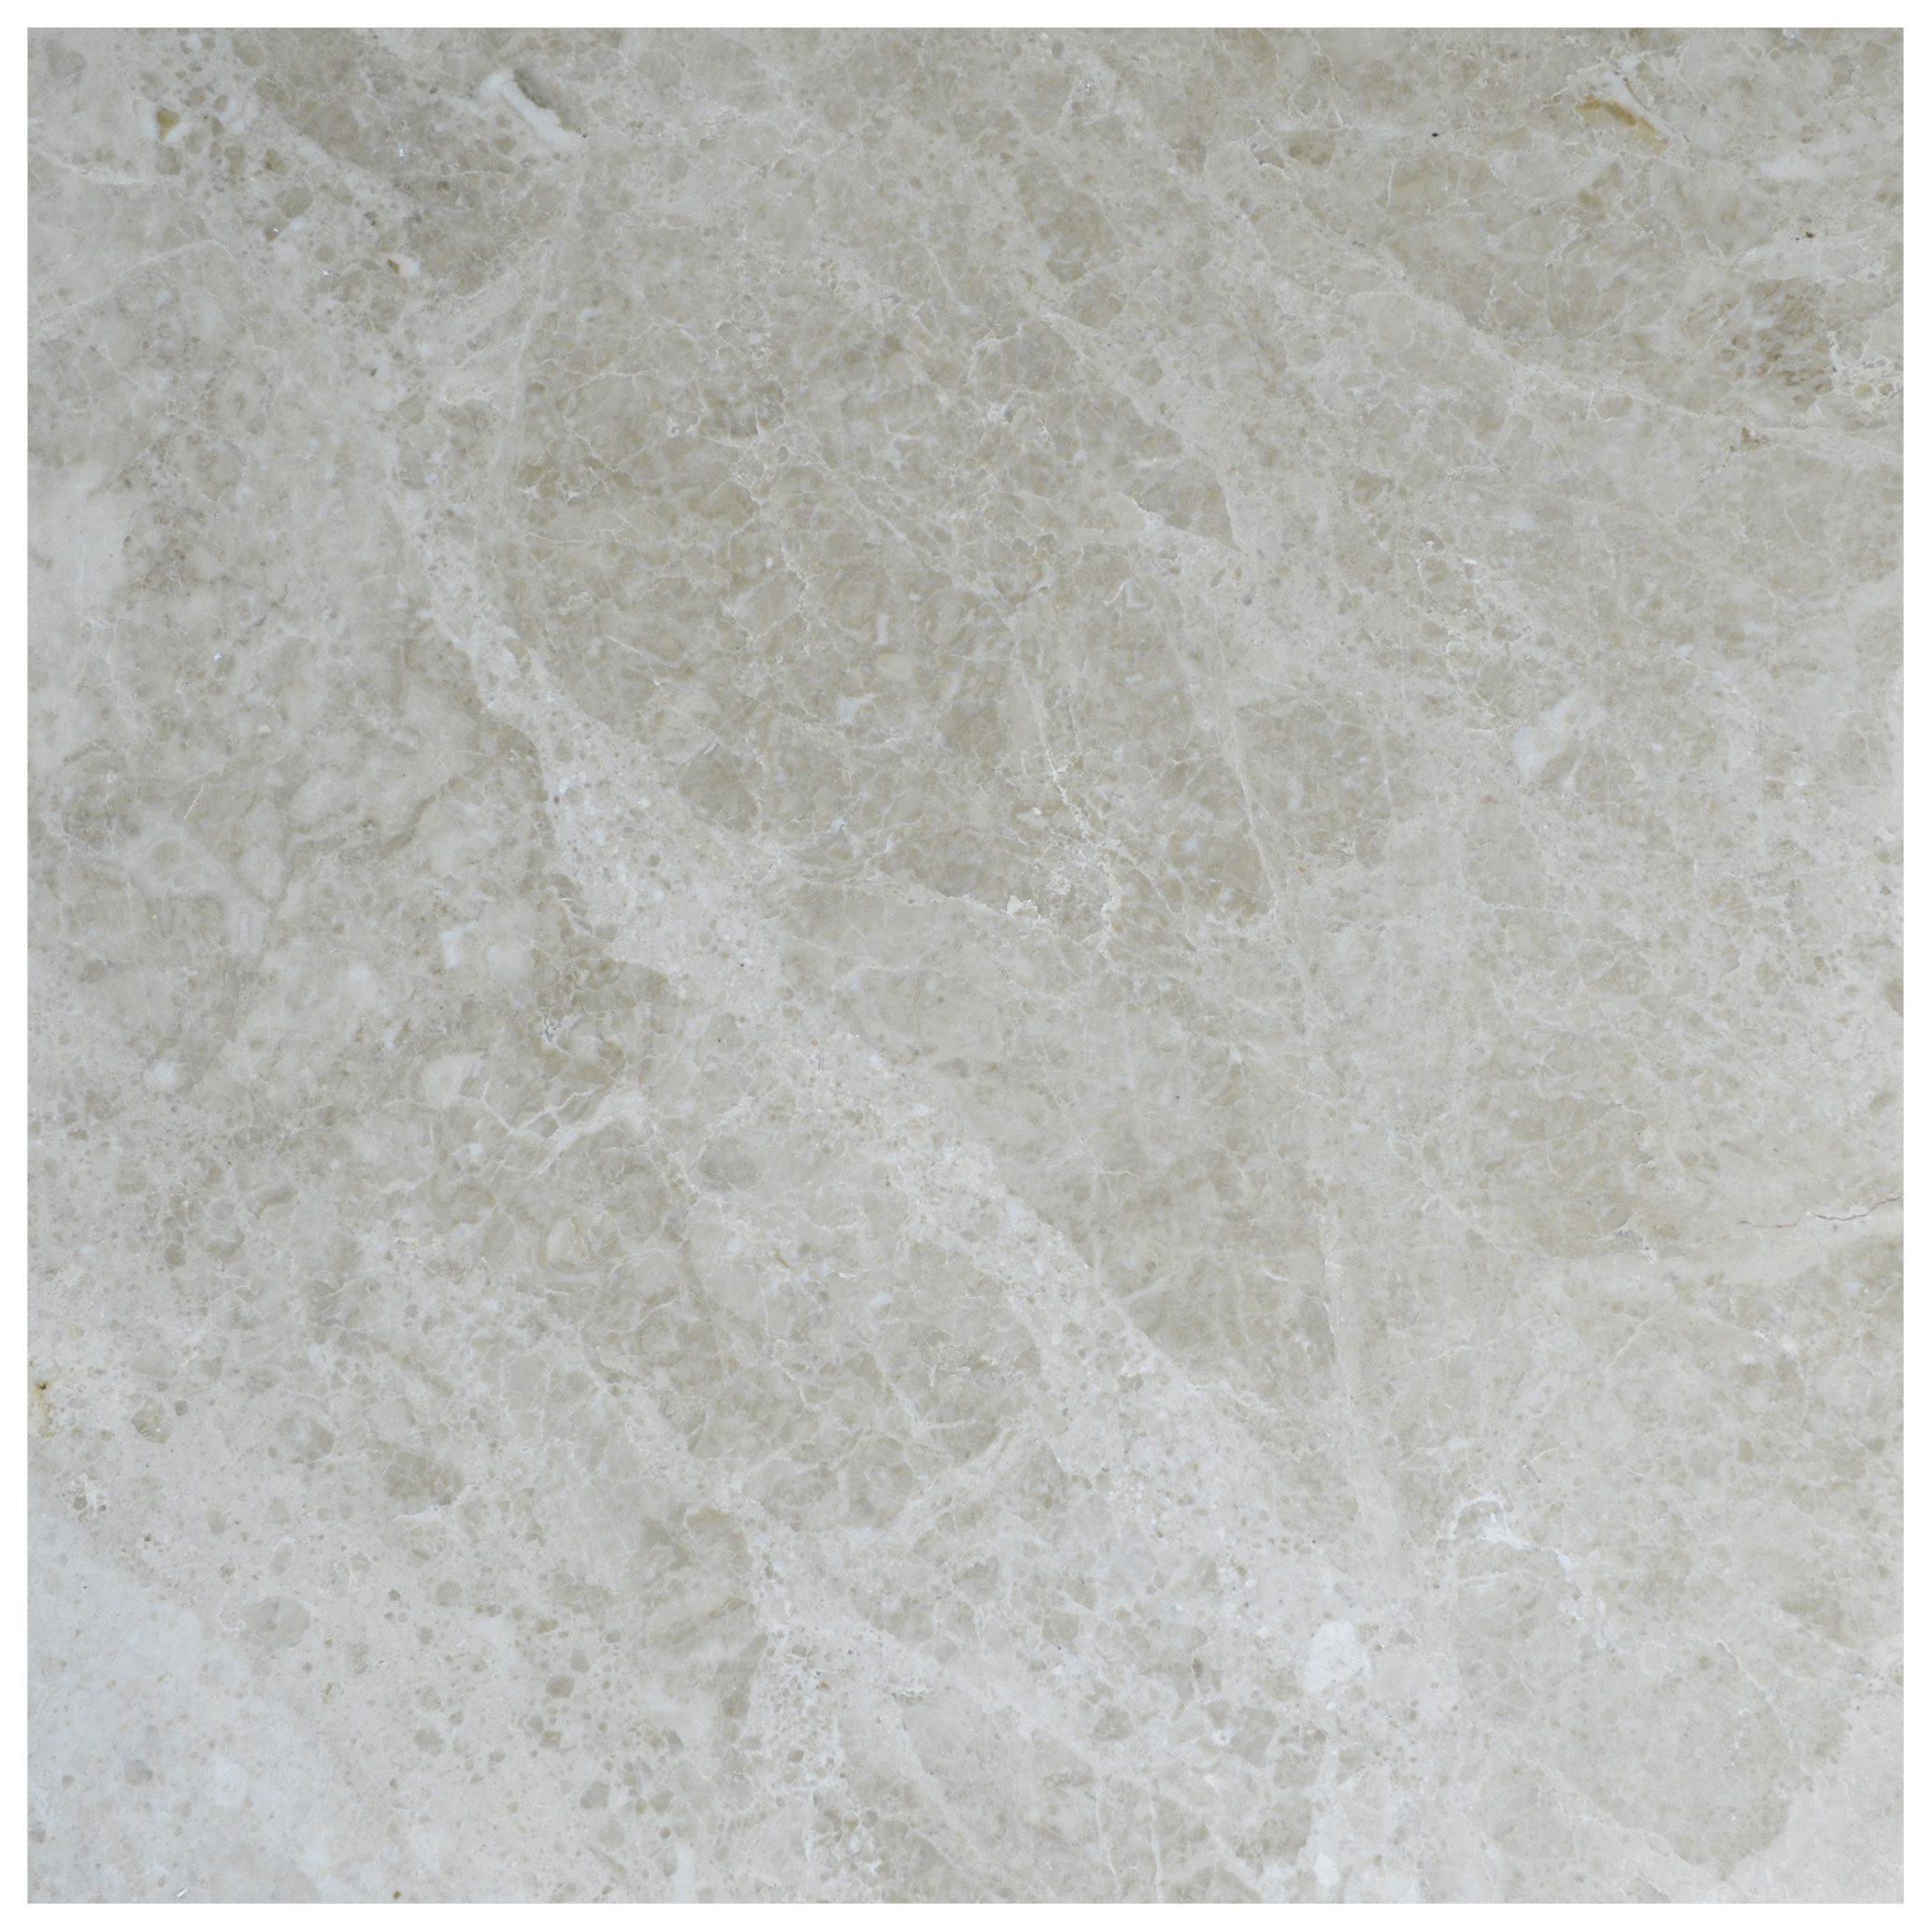 Cappuccino Brown Polished Marble Tiles 24x24-marble sale-Atlantic Stone Source